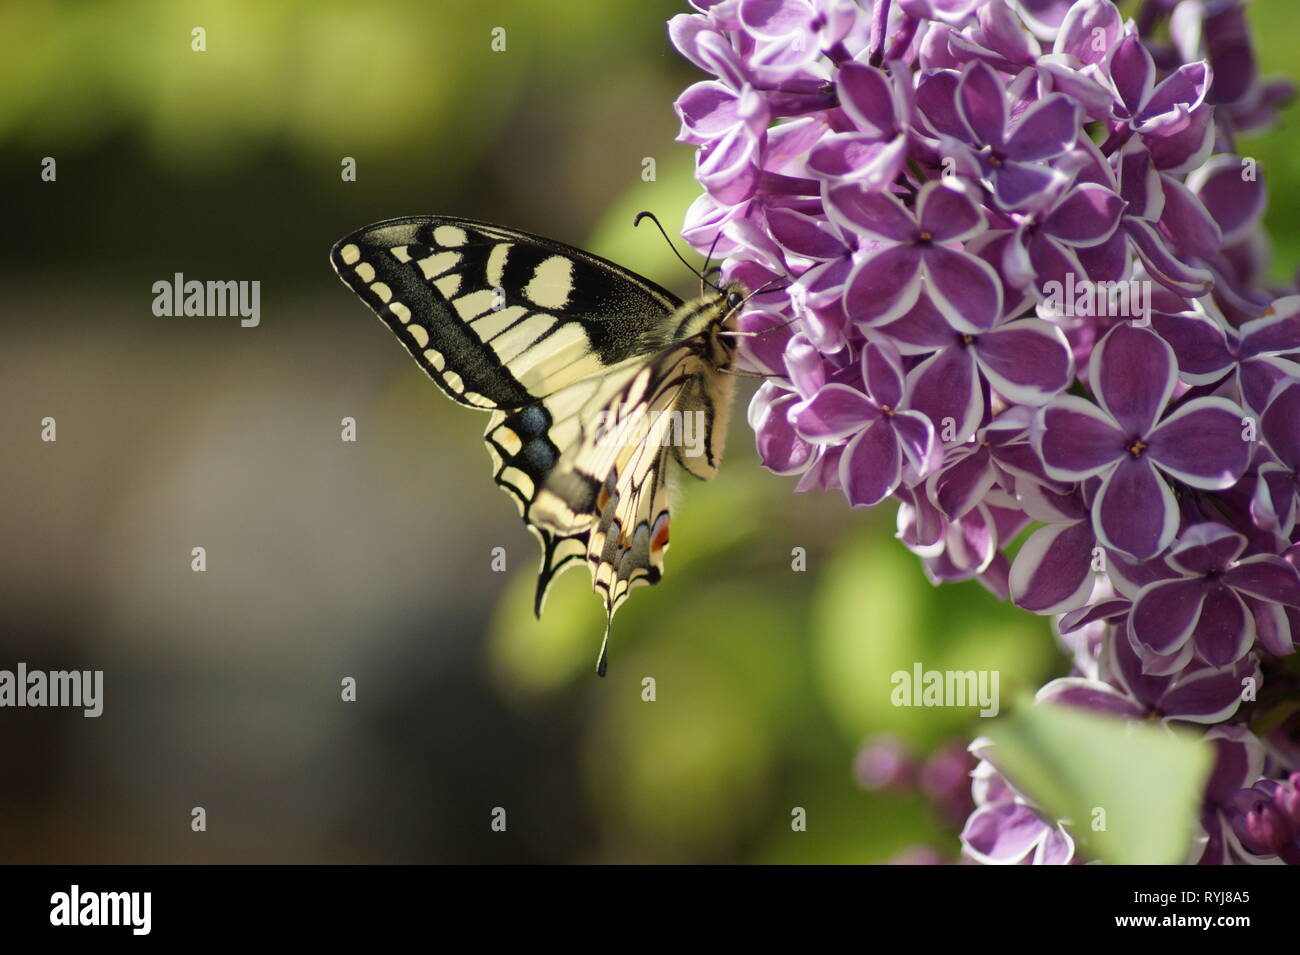 Swallowtail Butterfly Papilio machaon on lilac flower bush Syringa vulgaris Sensation flieder - Stock Image